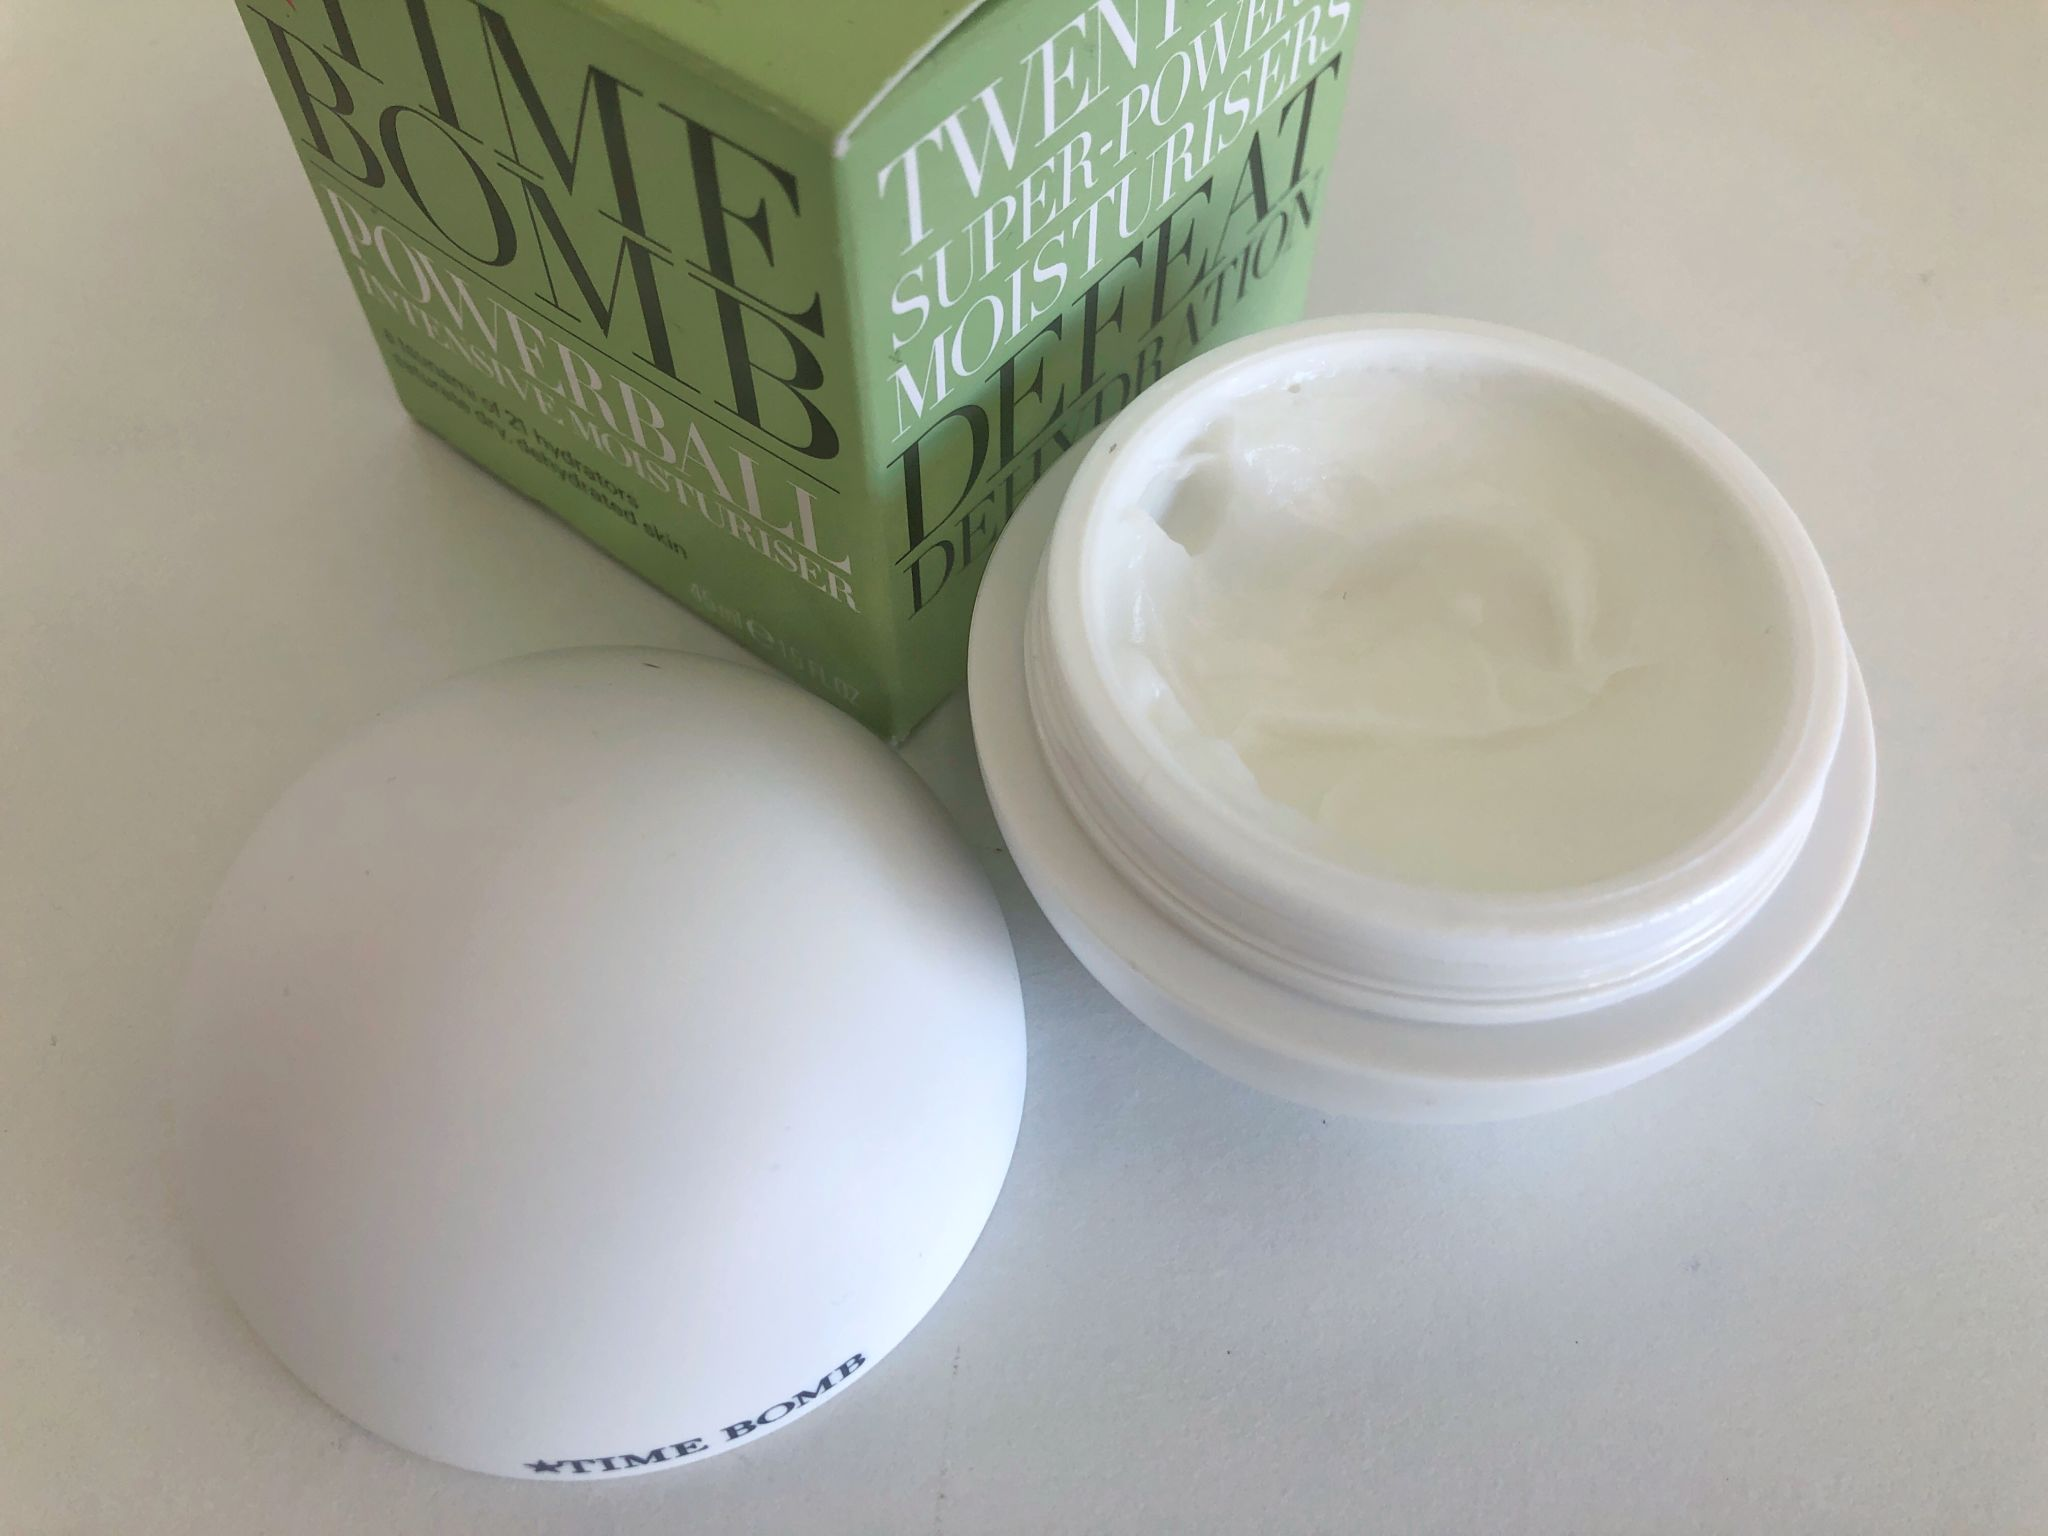 Time Bomb: Powerball Intensive Moisturiser Review